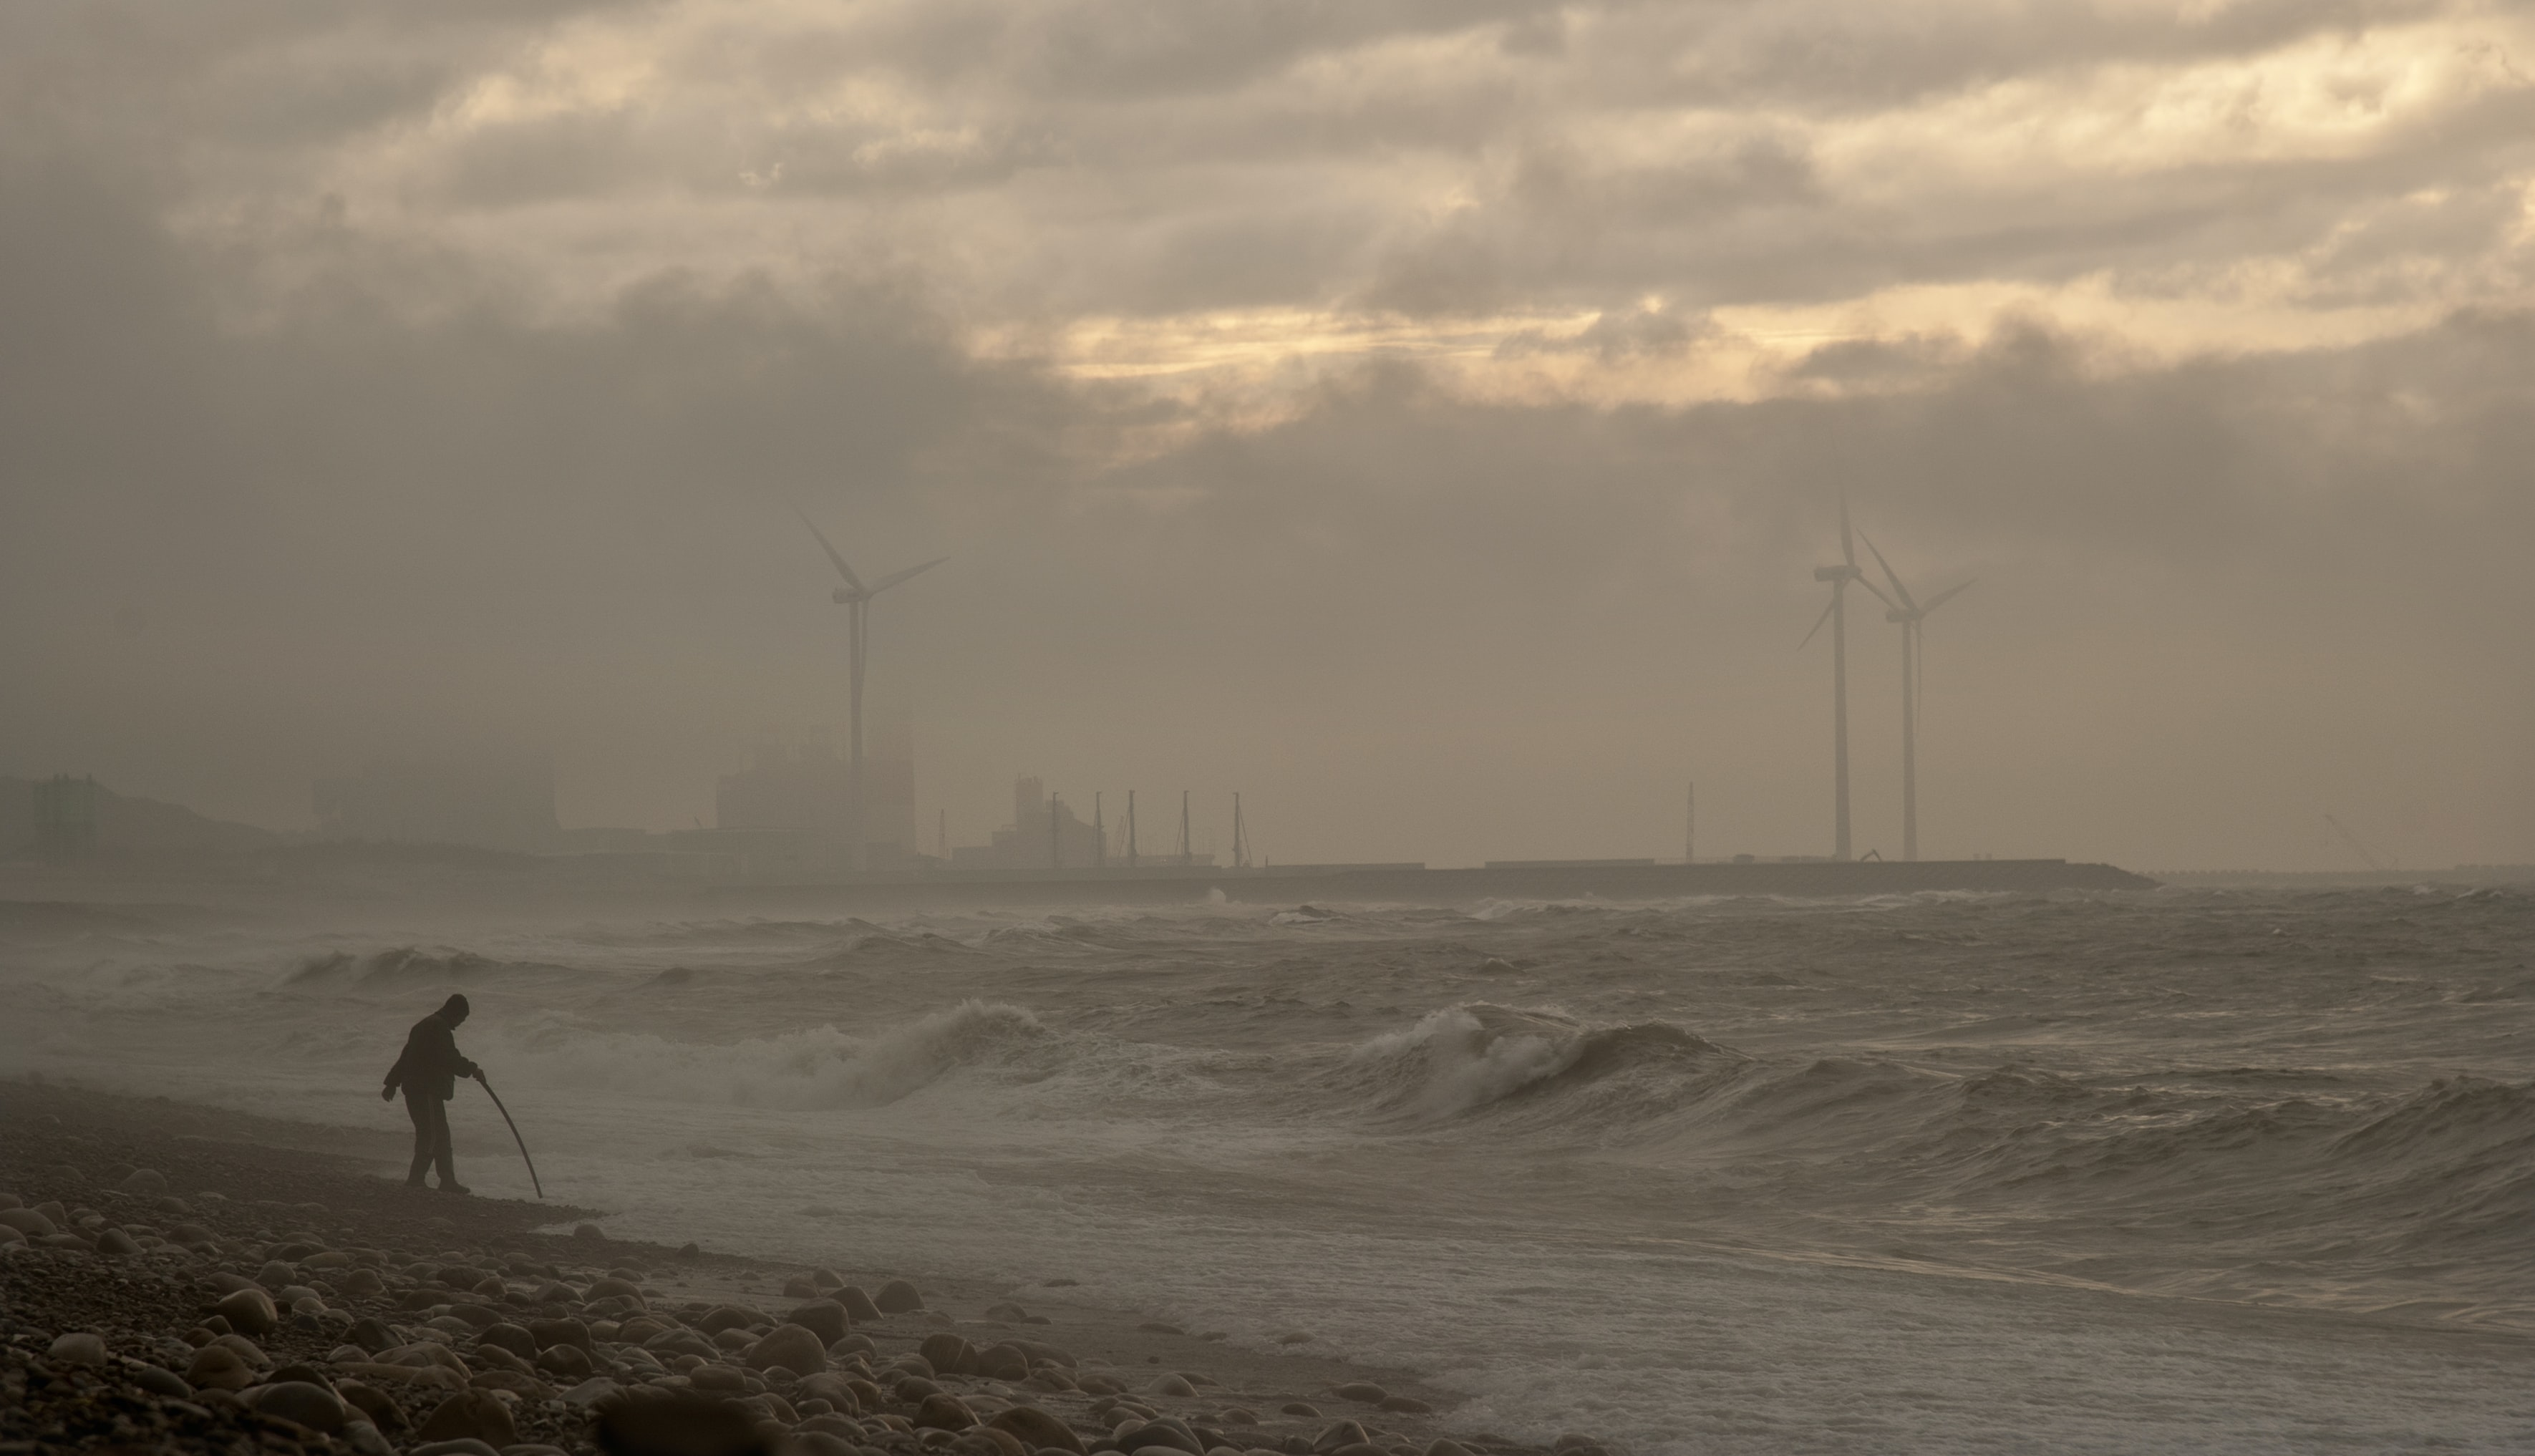 Dramatic view of the beach with rough winds and windmills in the background